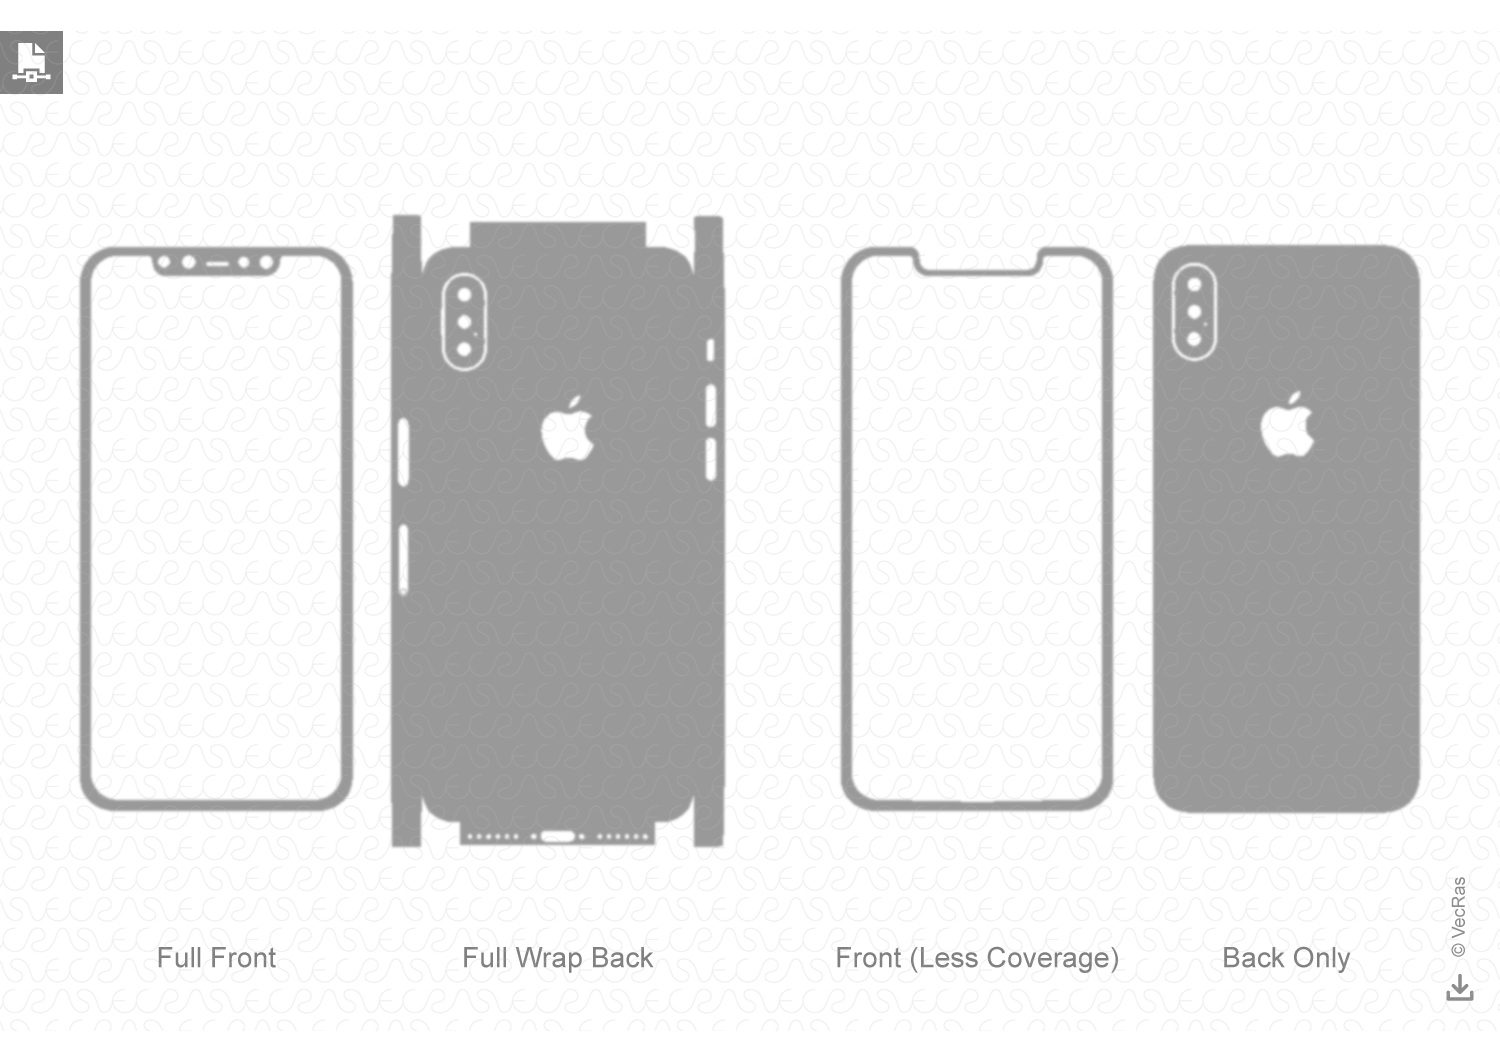 Template for cutting or design DIGITAL DOWNLOAD iPhone 8 Skin Template File